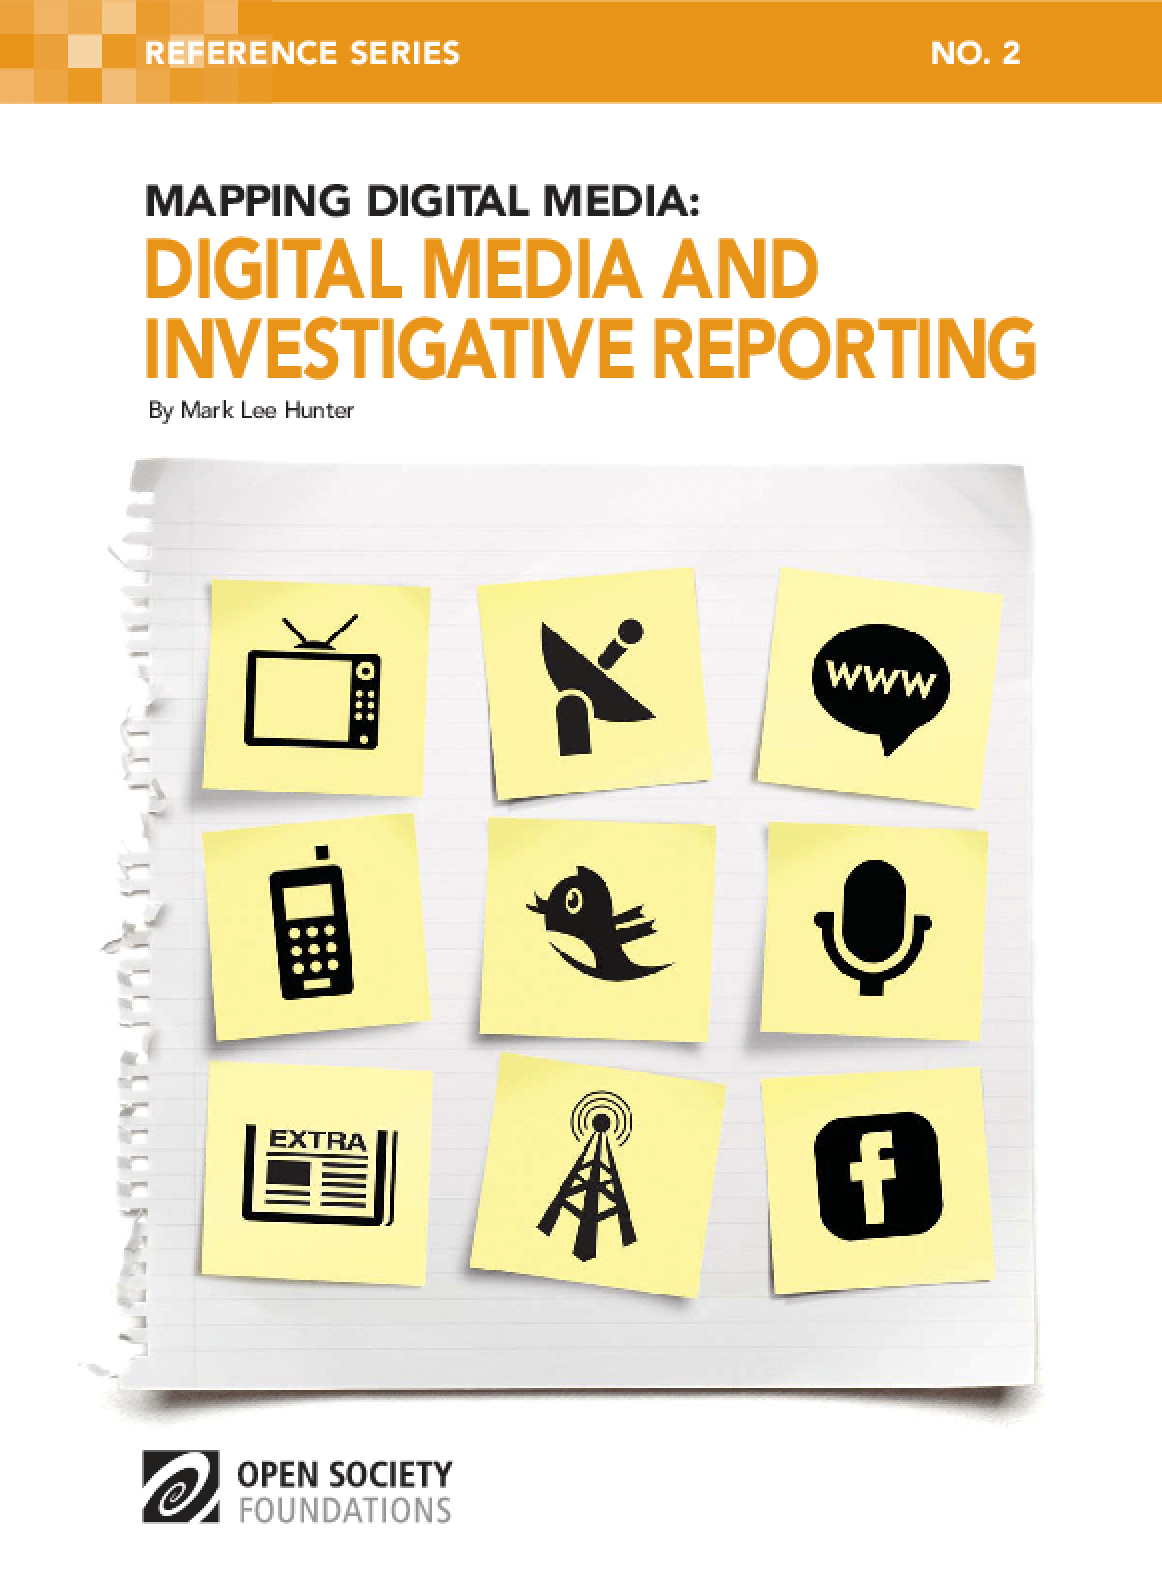 Mapping Digital Media: Digital Media and Investigative Reporting